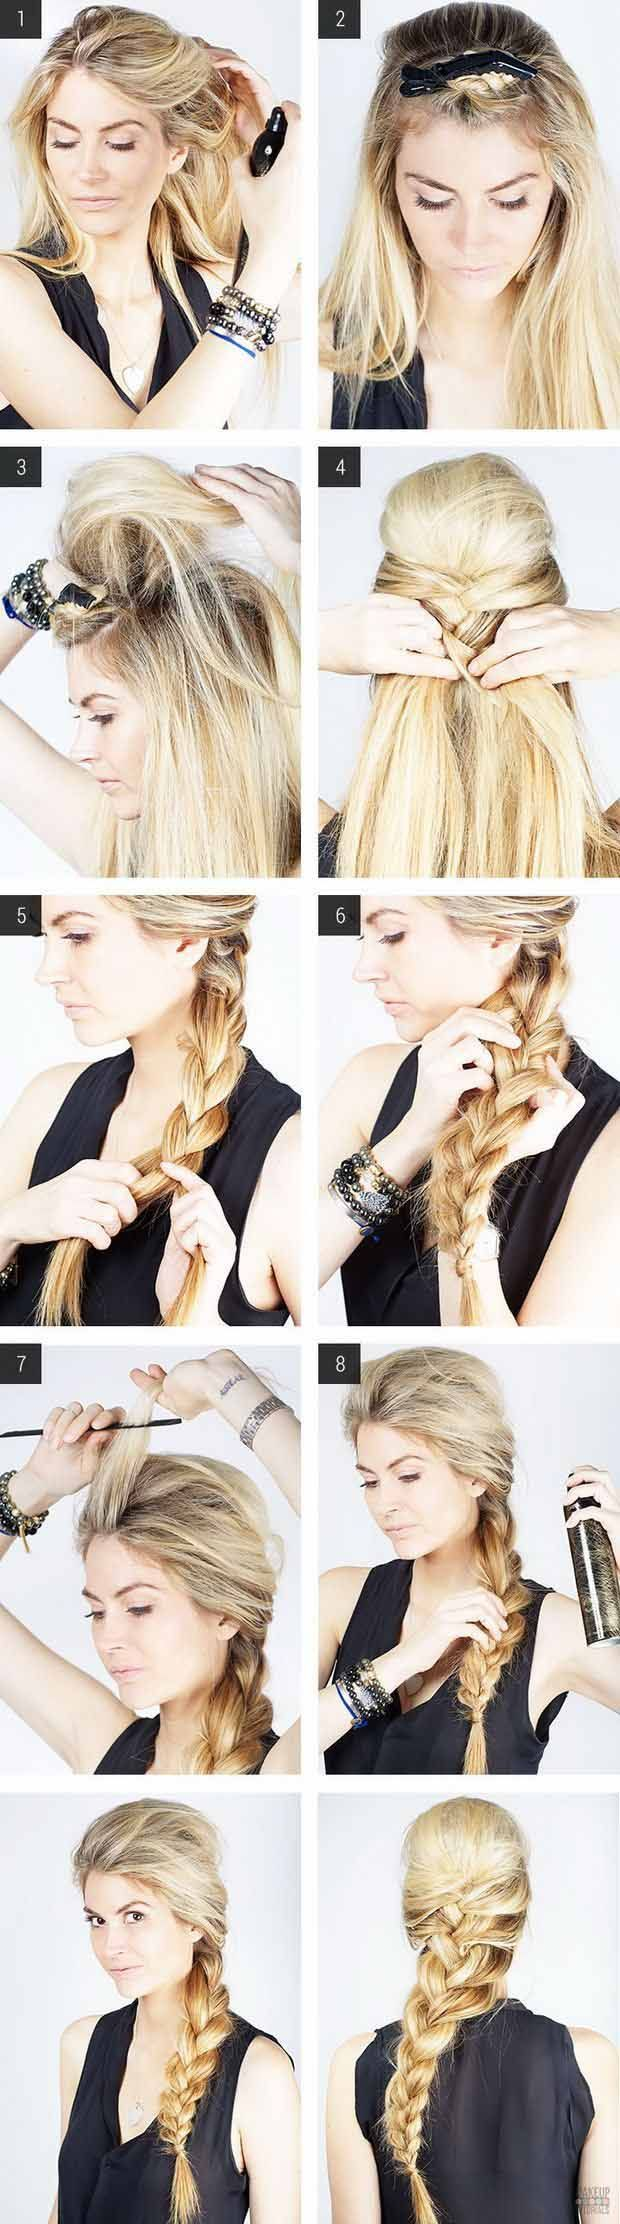 best whip my hair back u forth images on pinterest hair colors